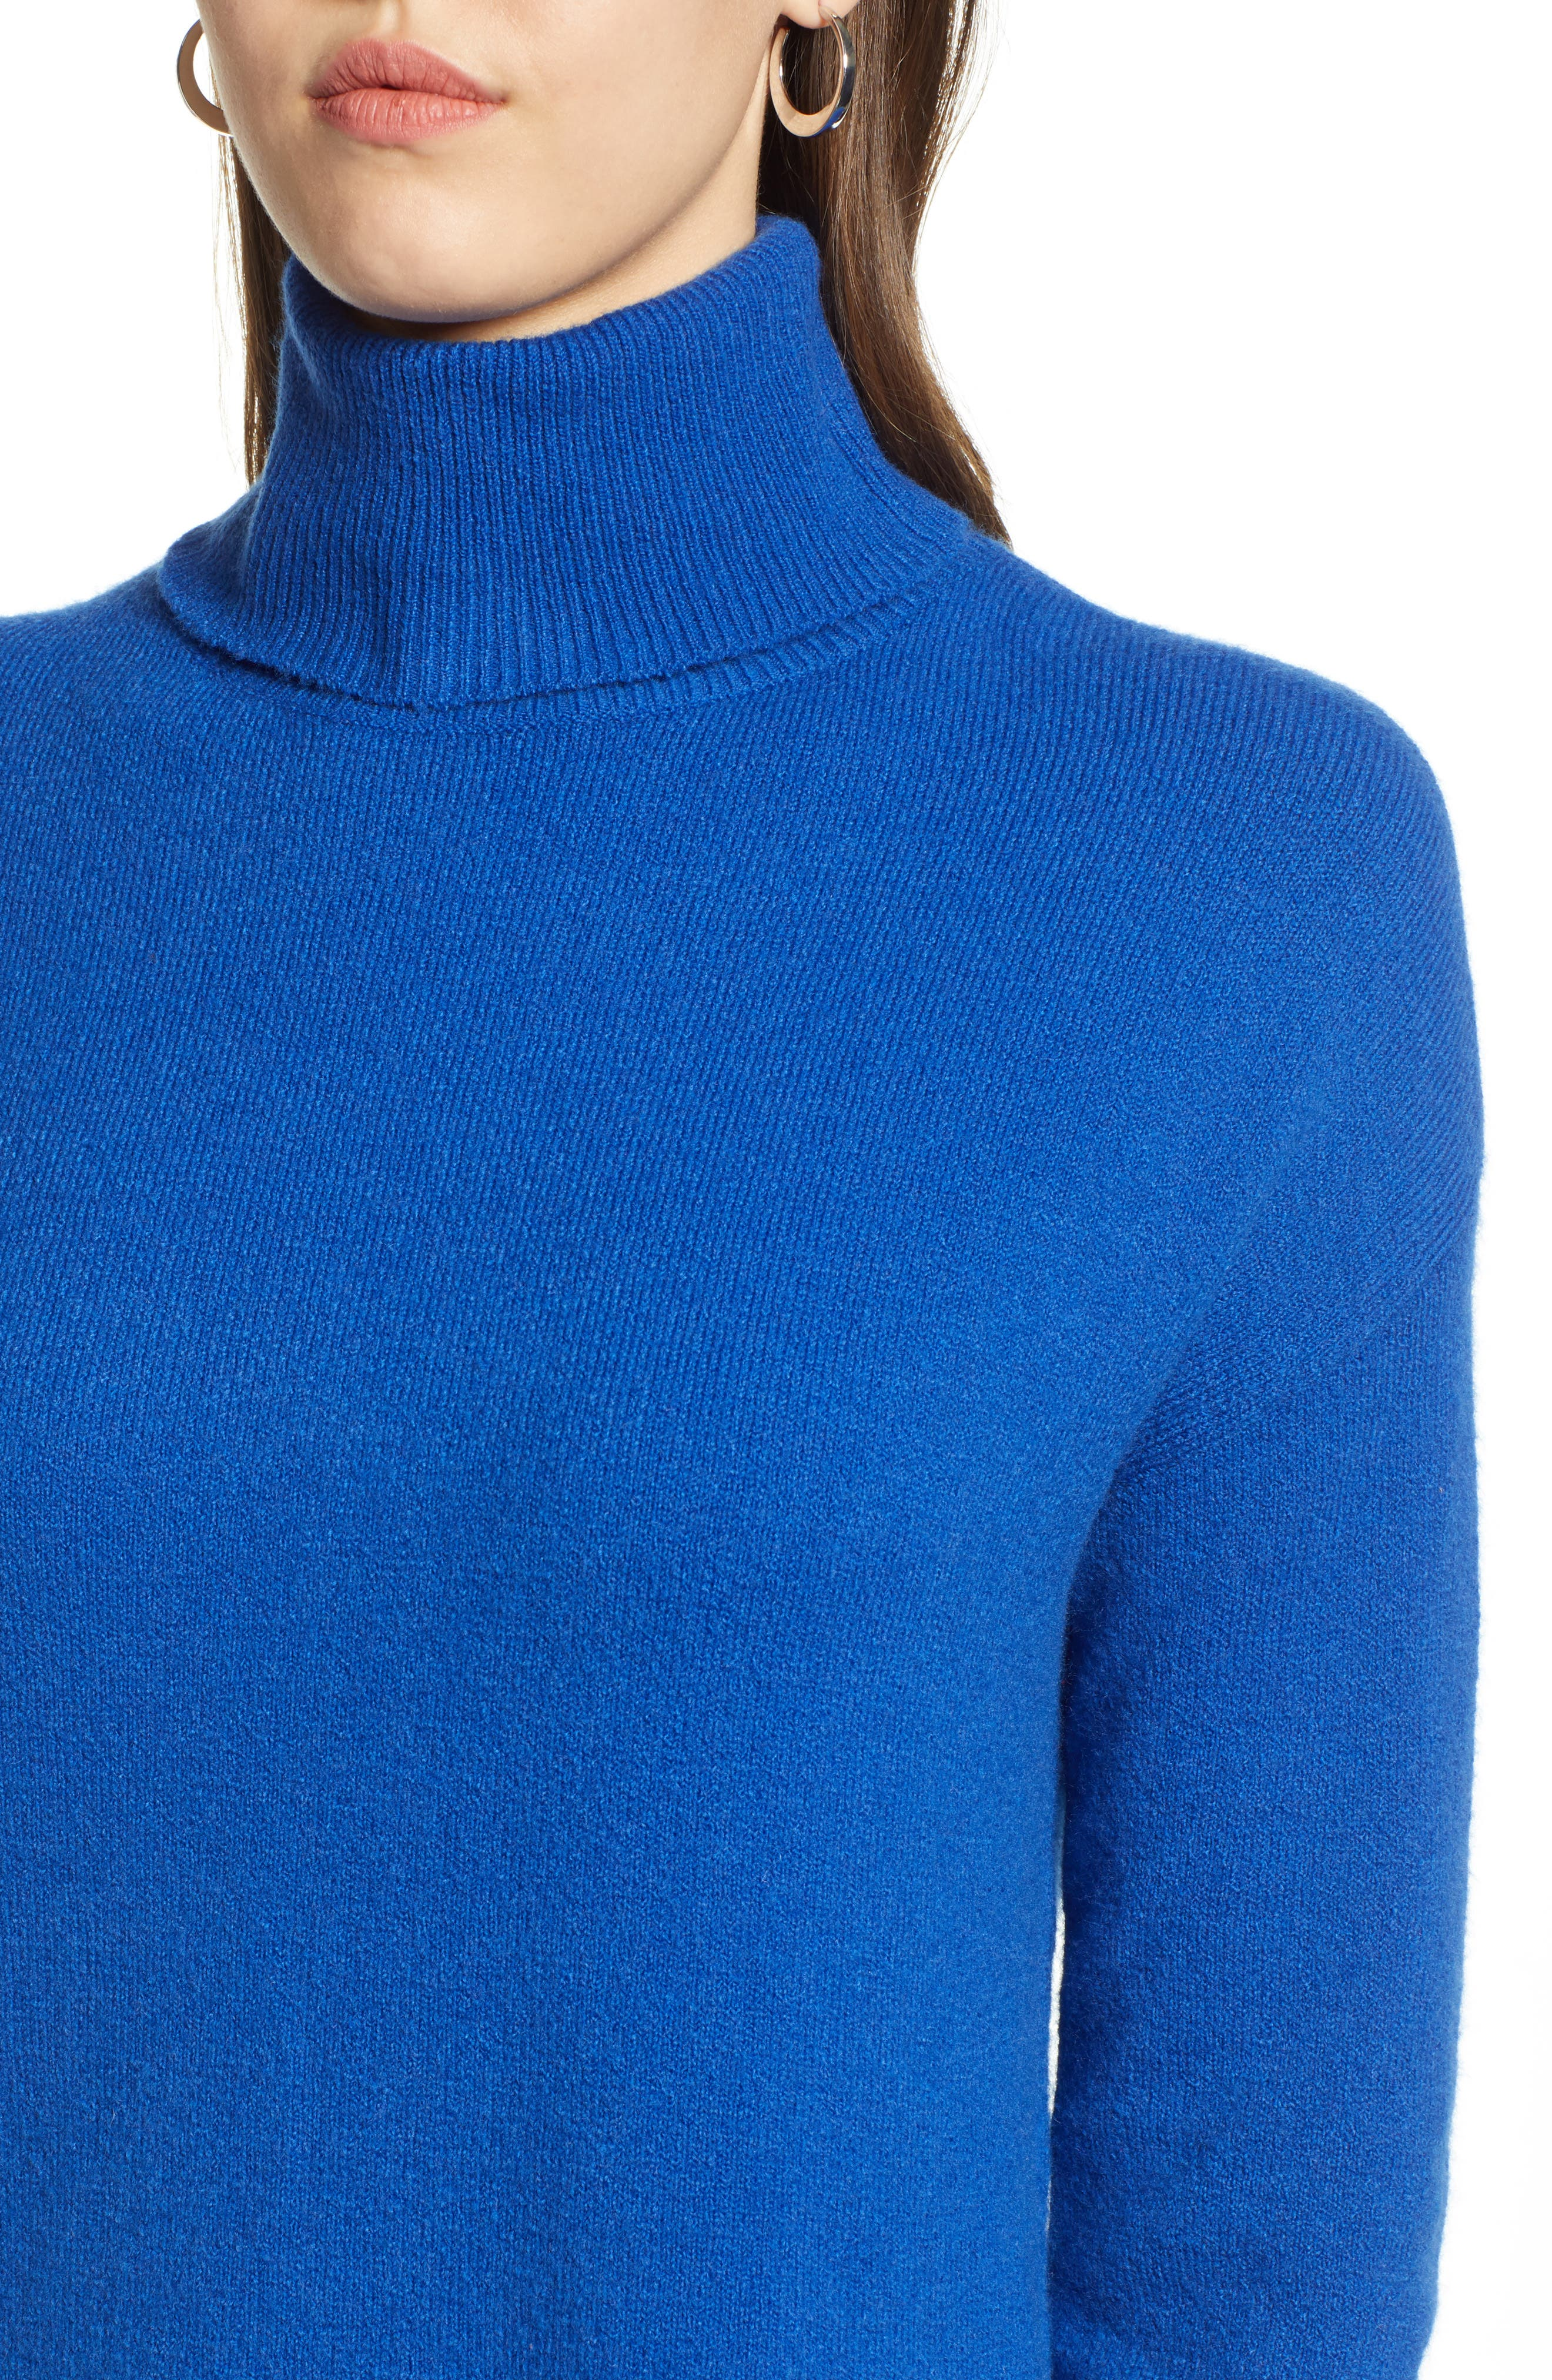 Turtleneck Wool Blend Tunic Sweater,                             Alternate thumbnail 4, color,                             401